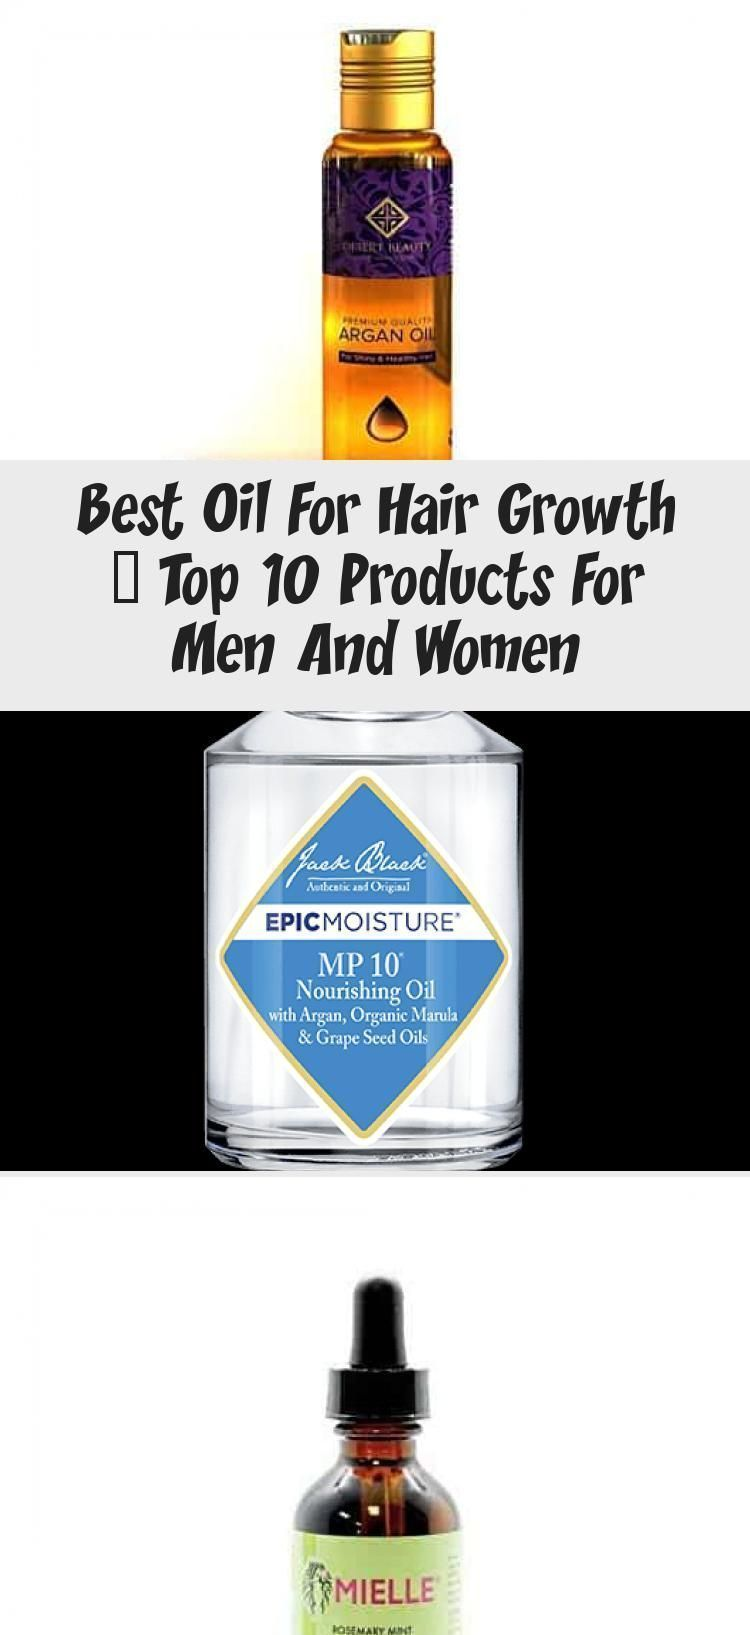 Best Oil For Hair Growth – Top 10 Products For Men And Women -  Best Oil For H...#growth #hair #men #oil #products #top #women #fasterhairgrowth